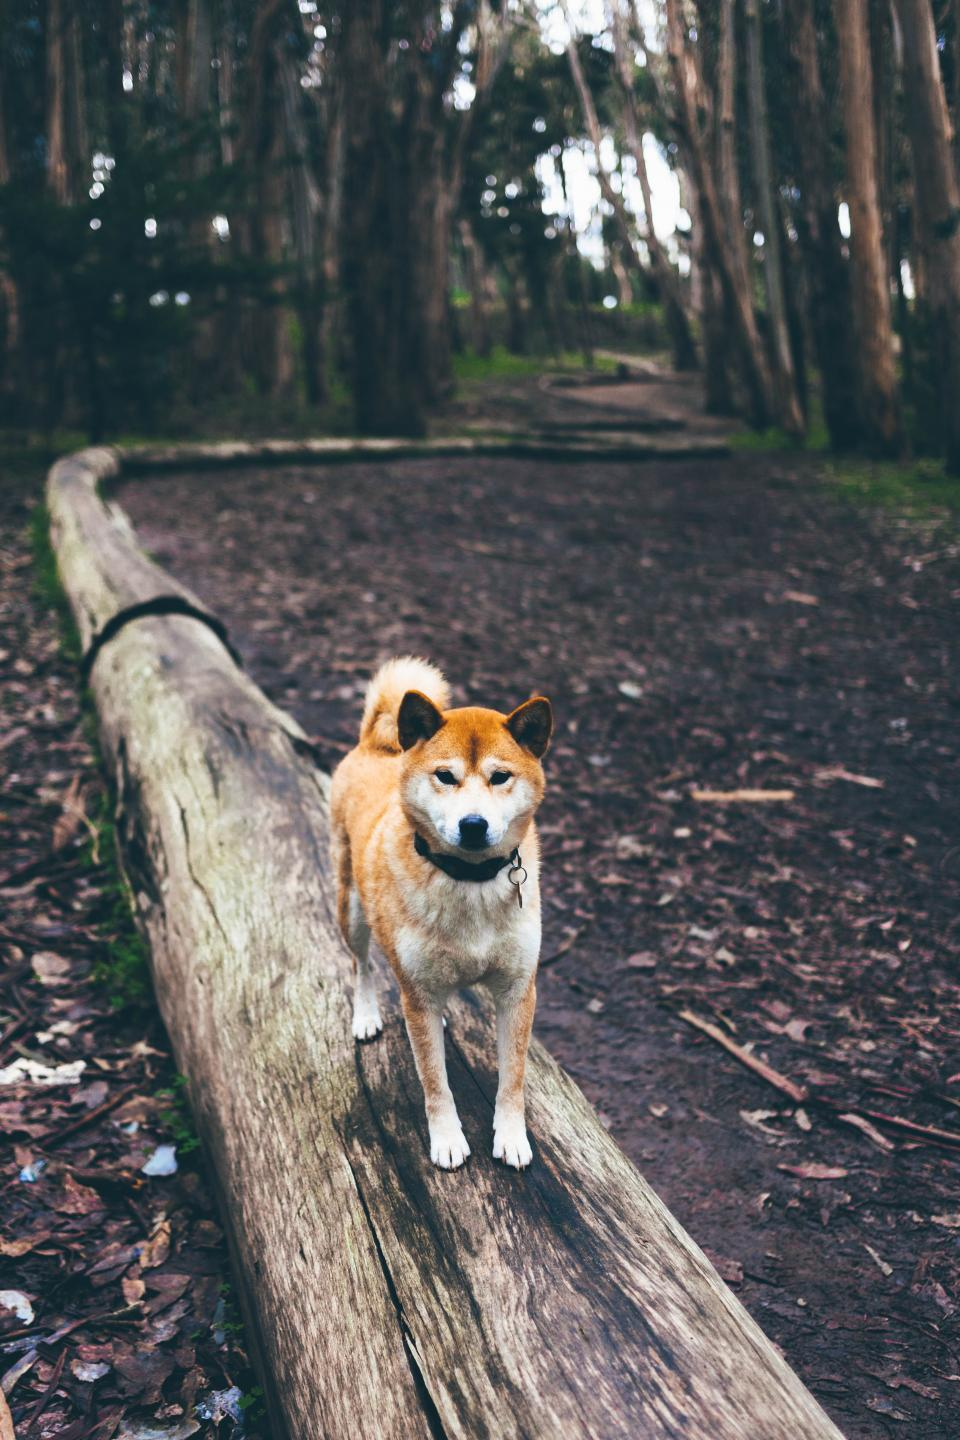 puppy, pet, dog, animal, friend, outdoor, woods, trees, plants, nature, blur